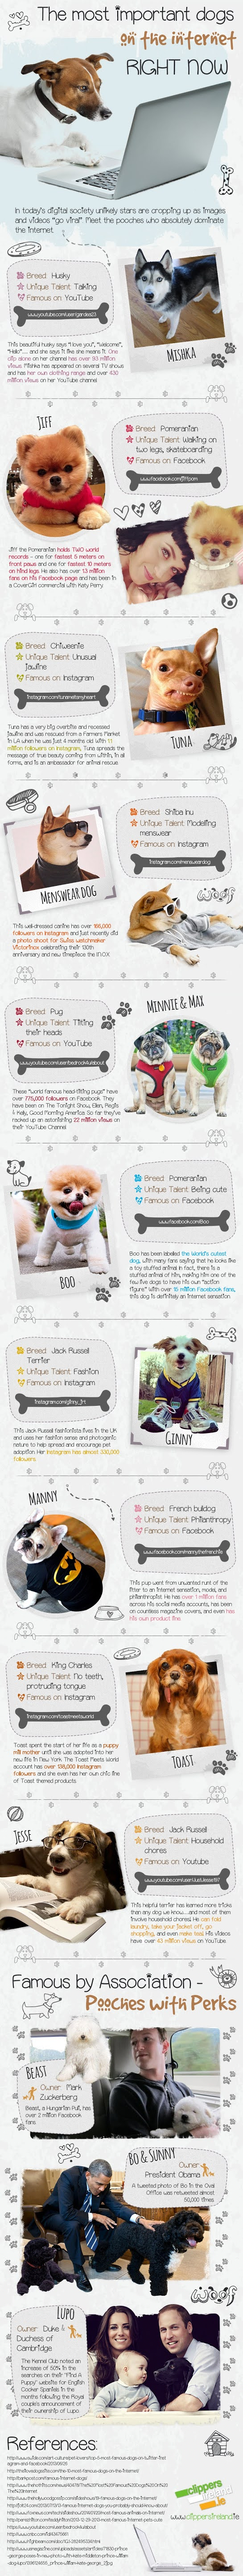 The most important dogs on the internet right now #infographic #Dogs #Internet